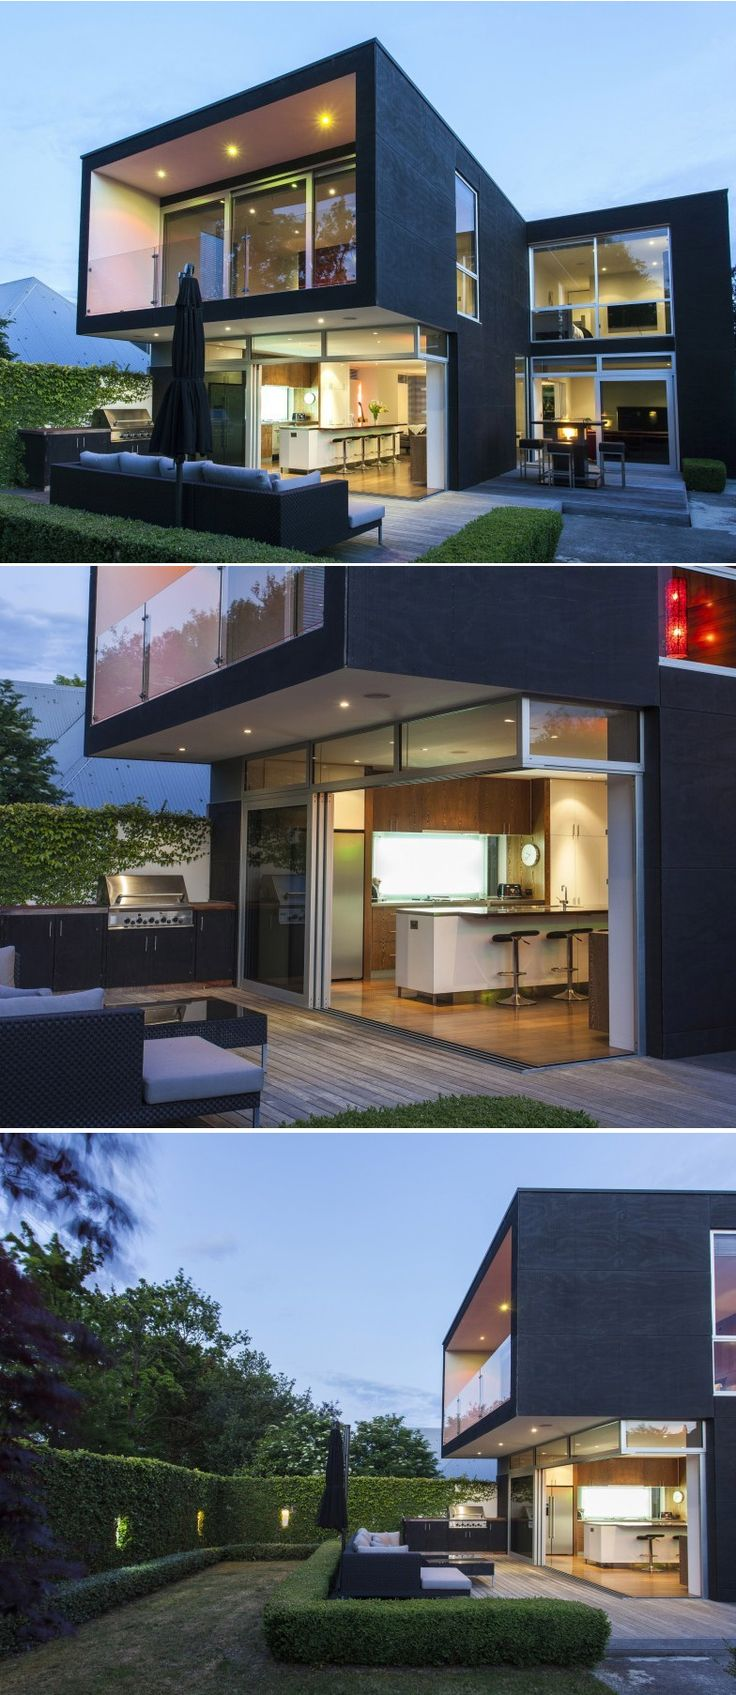 How To Build Amazing Shipping Container Homes Villa Architecture